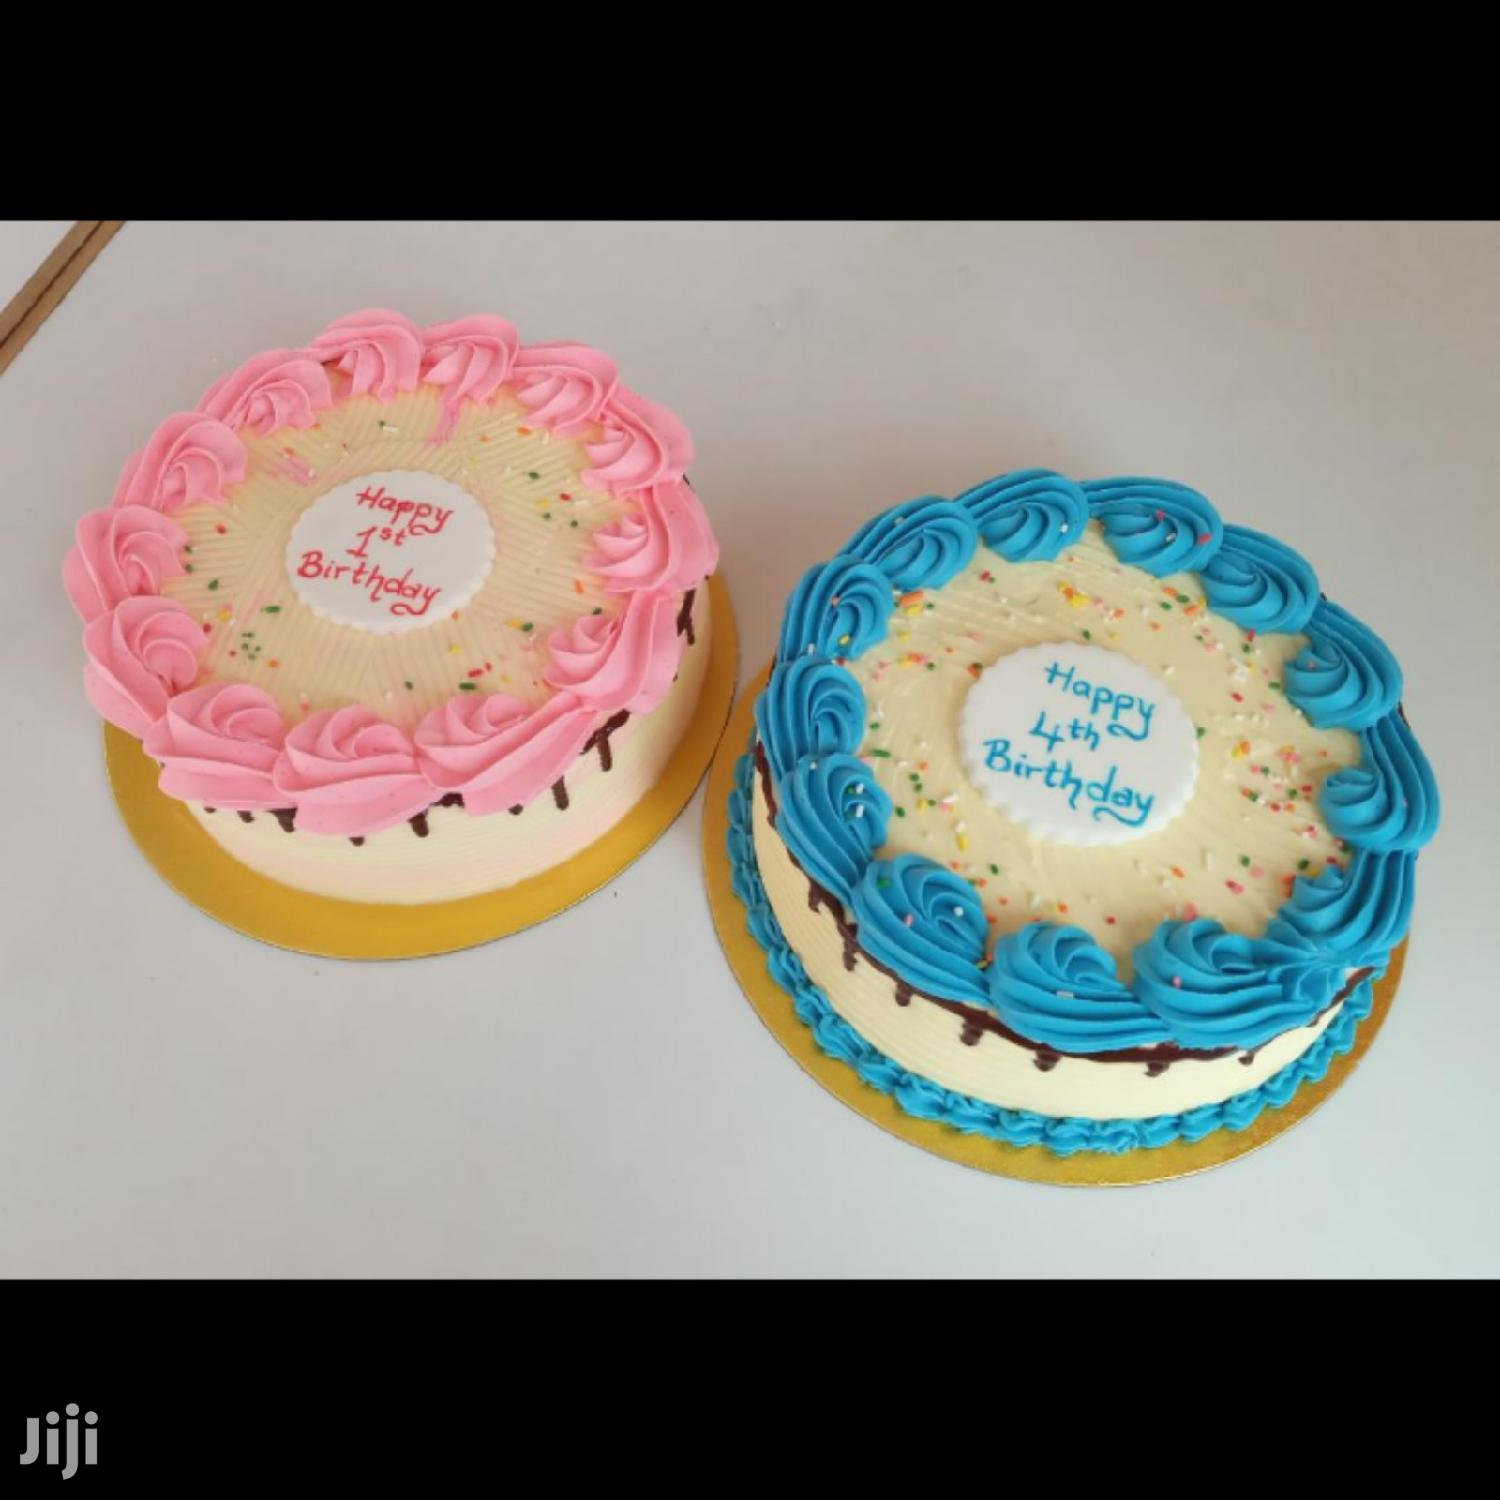 Birthday Cakes And Bridal Shower Cakes